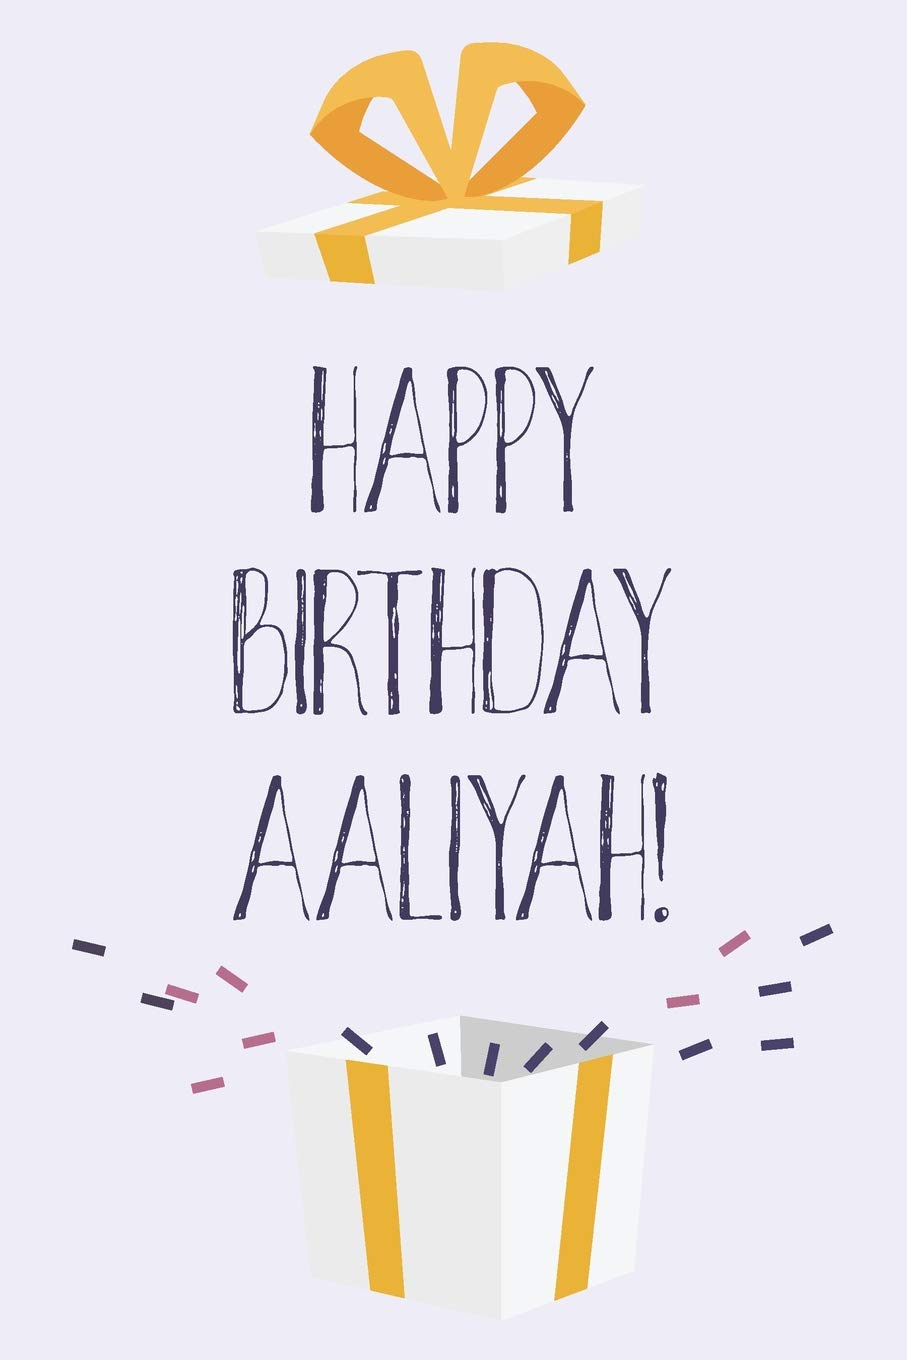 Happy Birthday Aaliyah Cute Personalized First Name Aaliyah Birthday Card Journal Notebook Diary Greetings Appreciation Gift For Girls 6 X 9 110 Blank Lined Pages Publishing Thrice 9781073427512 Amazon Com Books